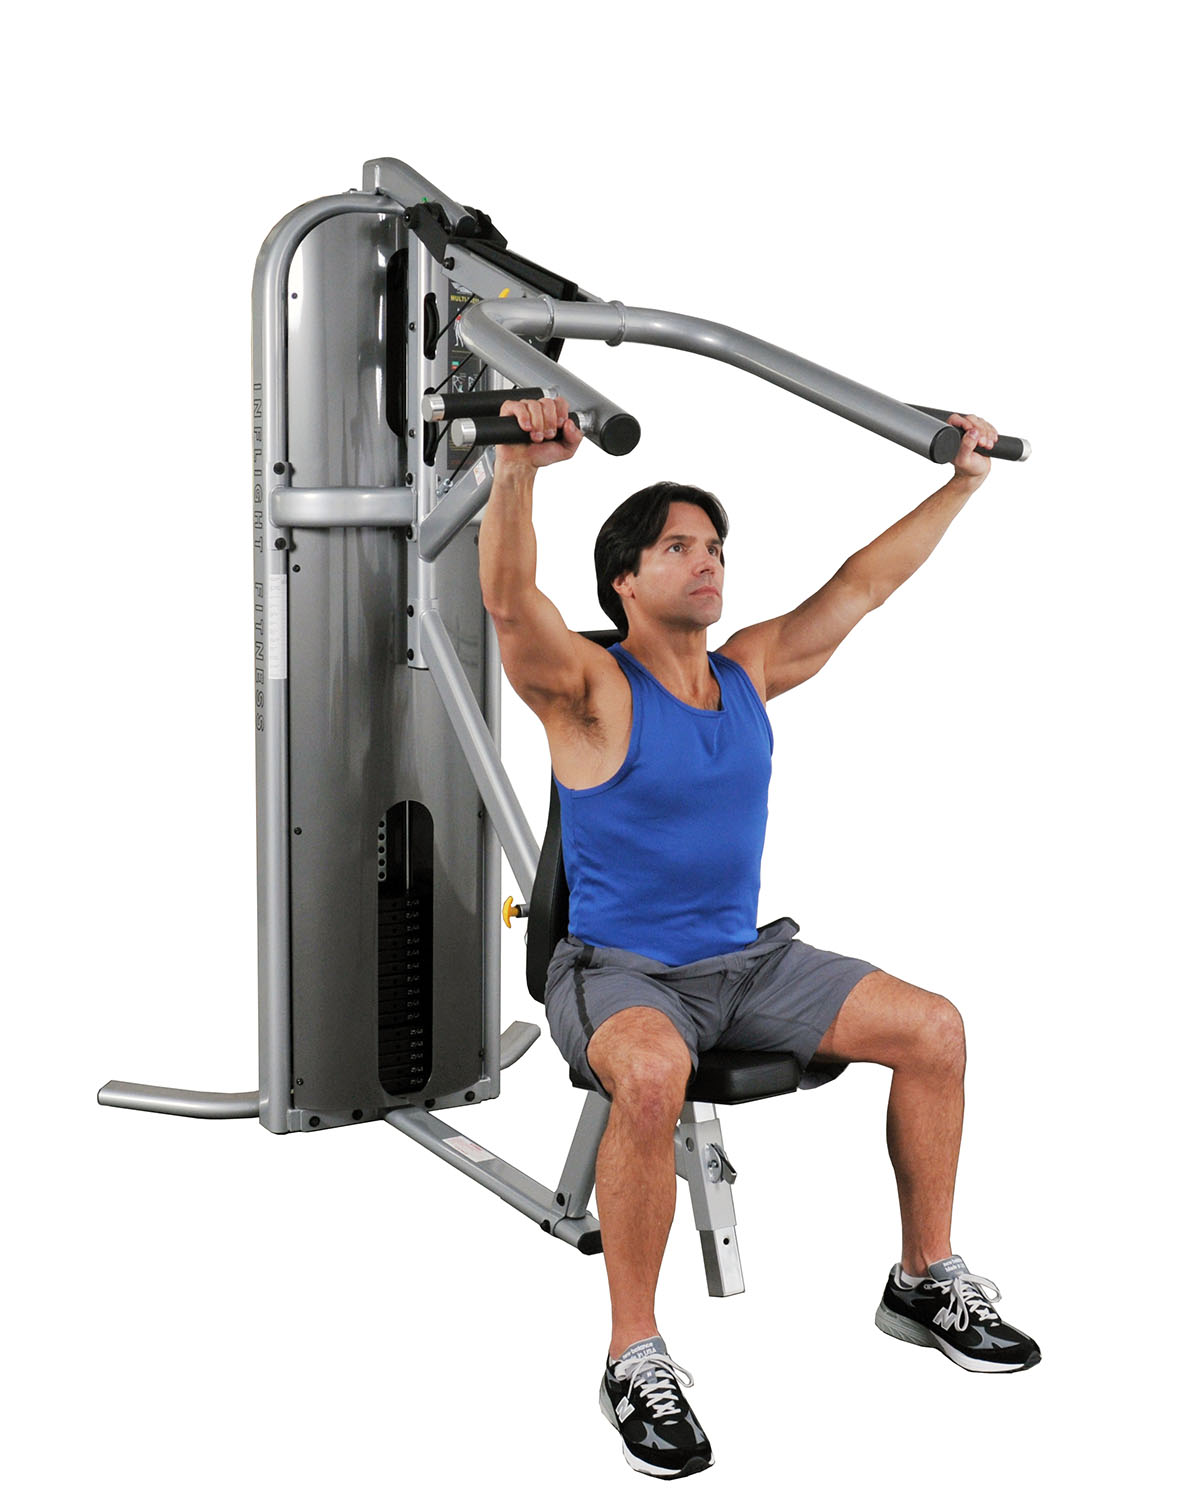 gym-equipment-weight-machines.jpg